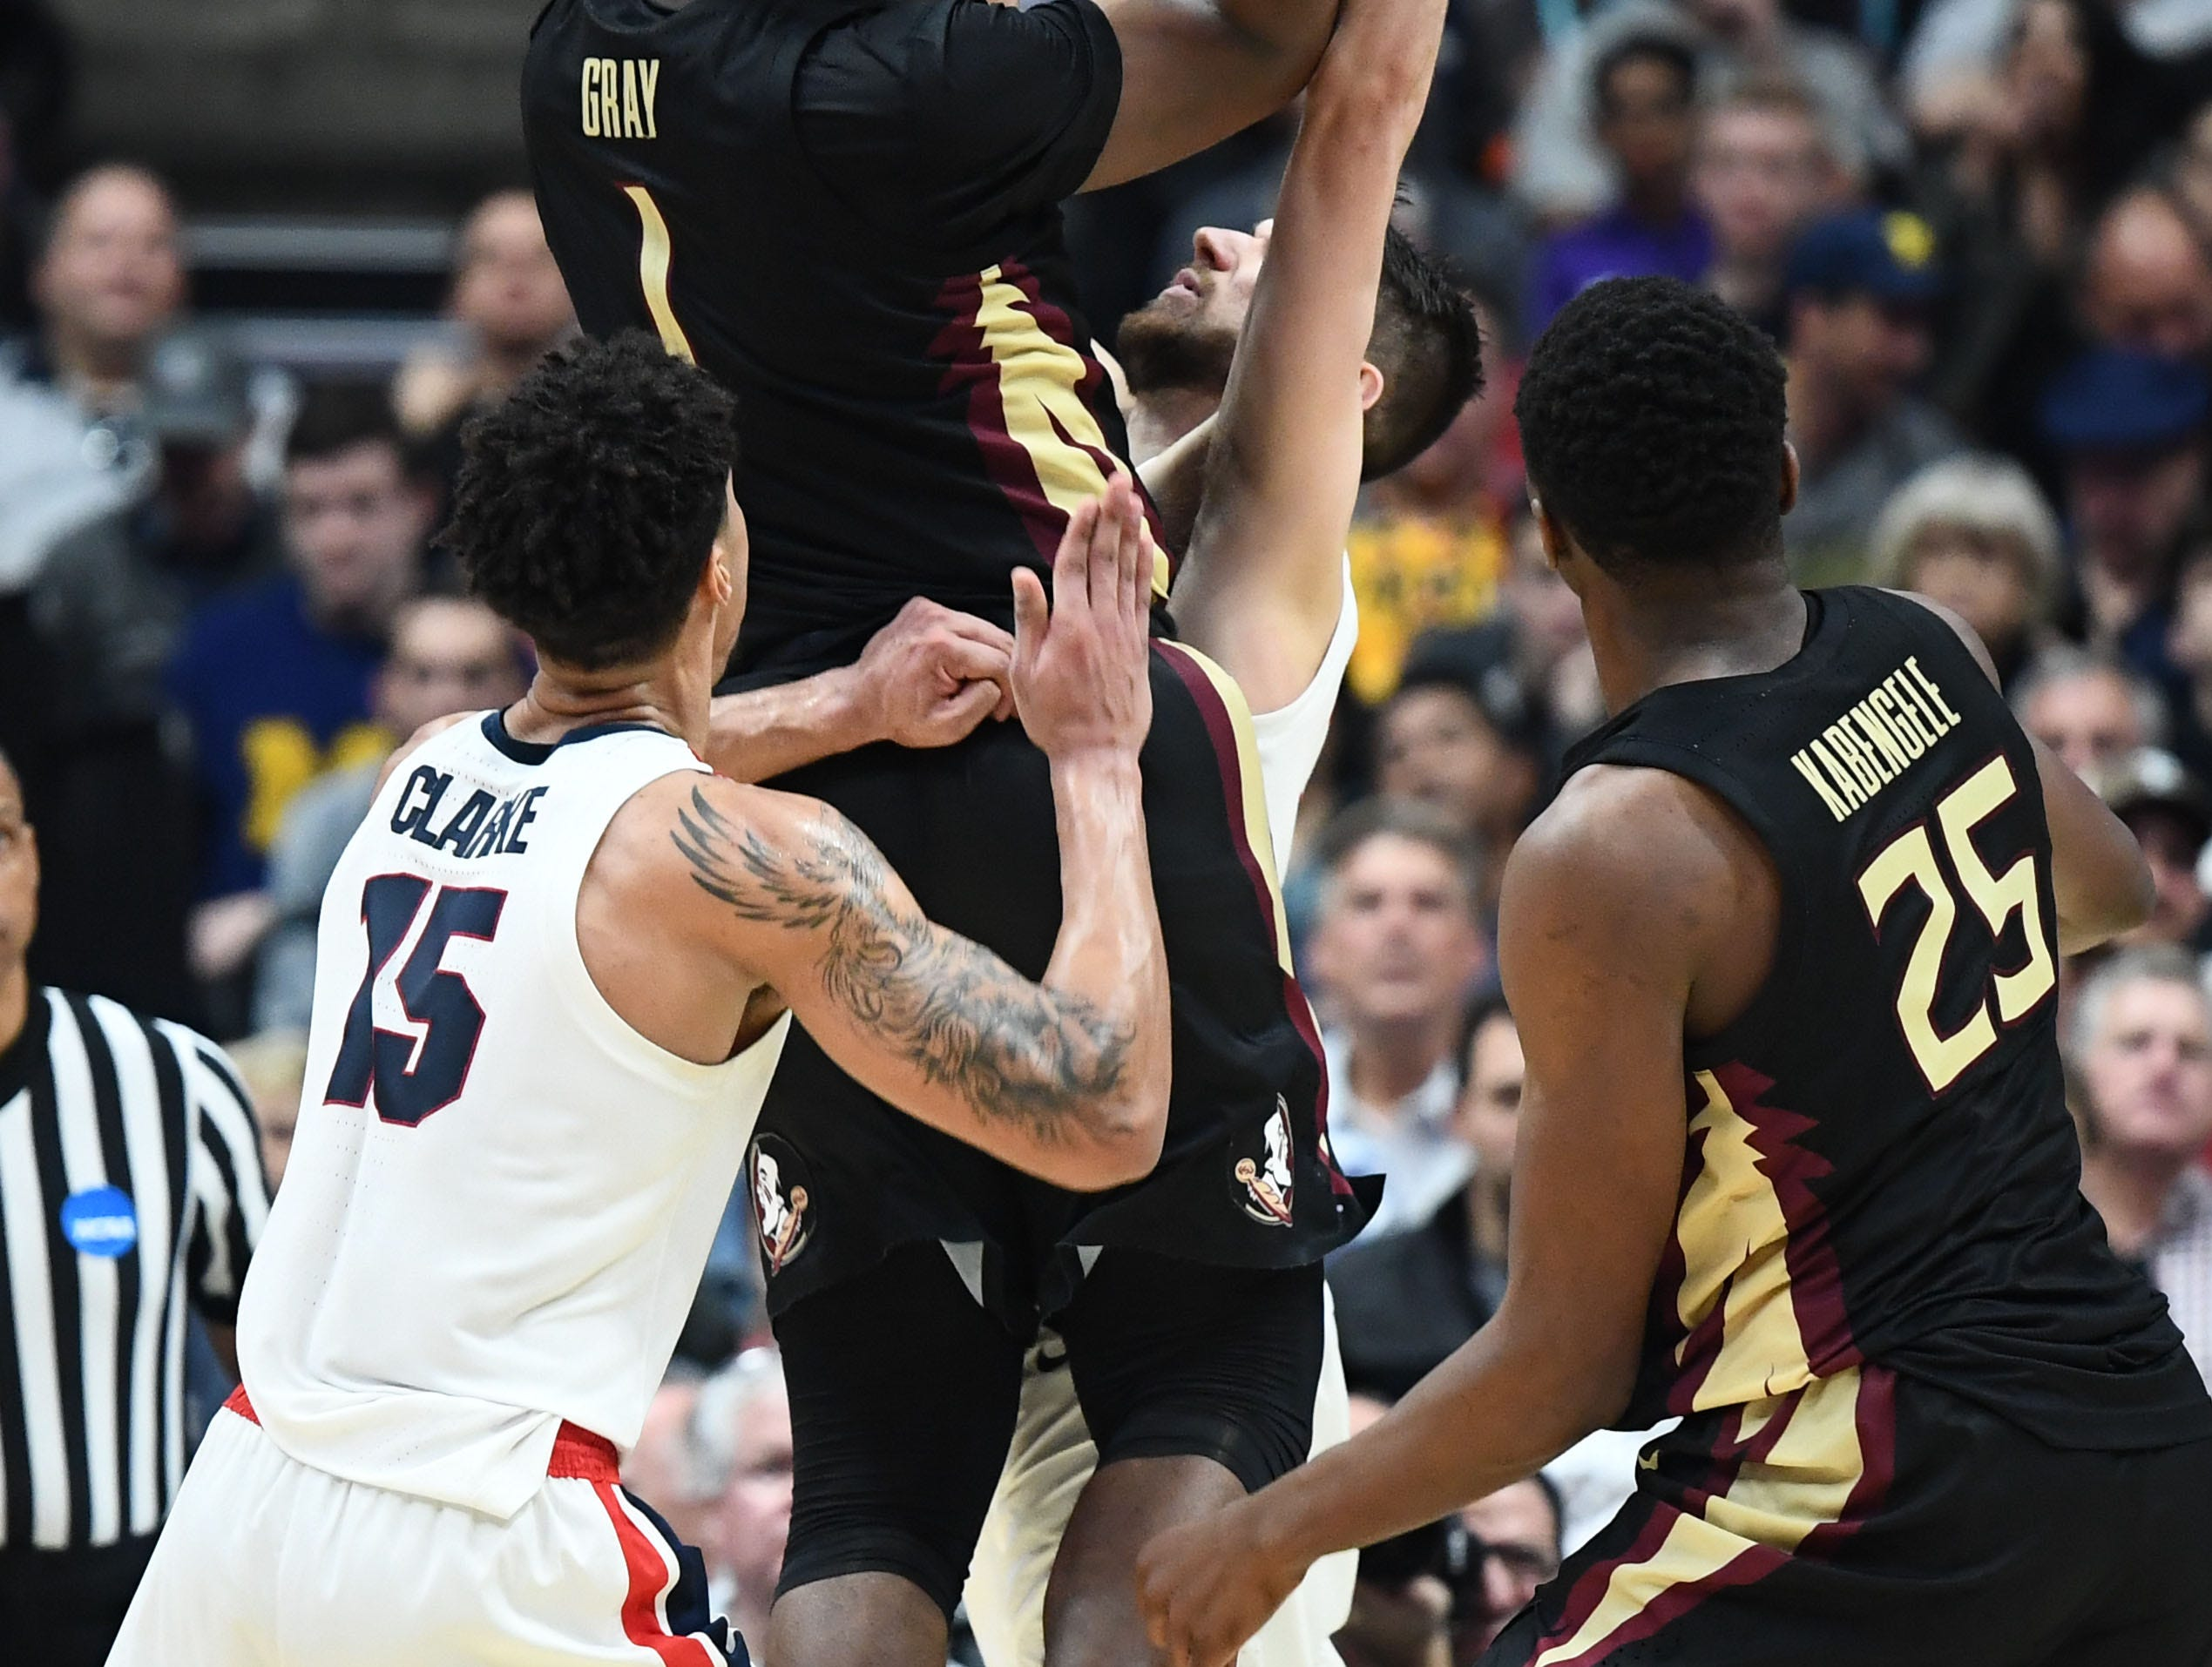 March 28, 2019; Anaheim, CA, USA; Florida State Seminoles forward Raiquan Gray (1) shoots ahead of Gonzaga Bulldogs forward Brandon Clarke (15) during the second half in the semifinals of the west regional of the 2019 NCAA Tournament at Honda Center. Mandatory Credit: Robert Hanashiro-USA TODAY Sports